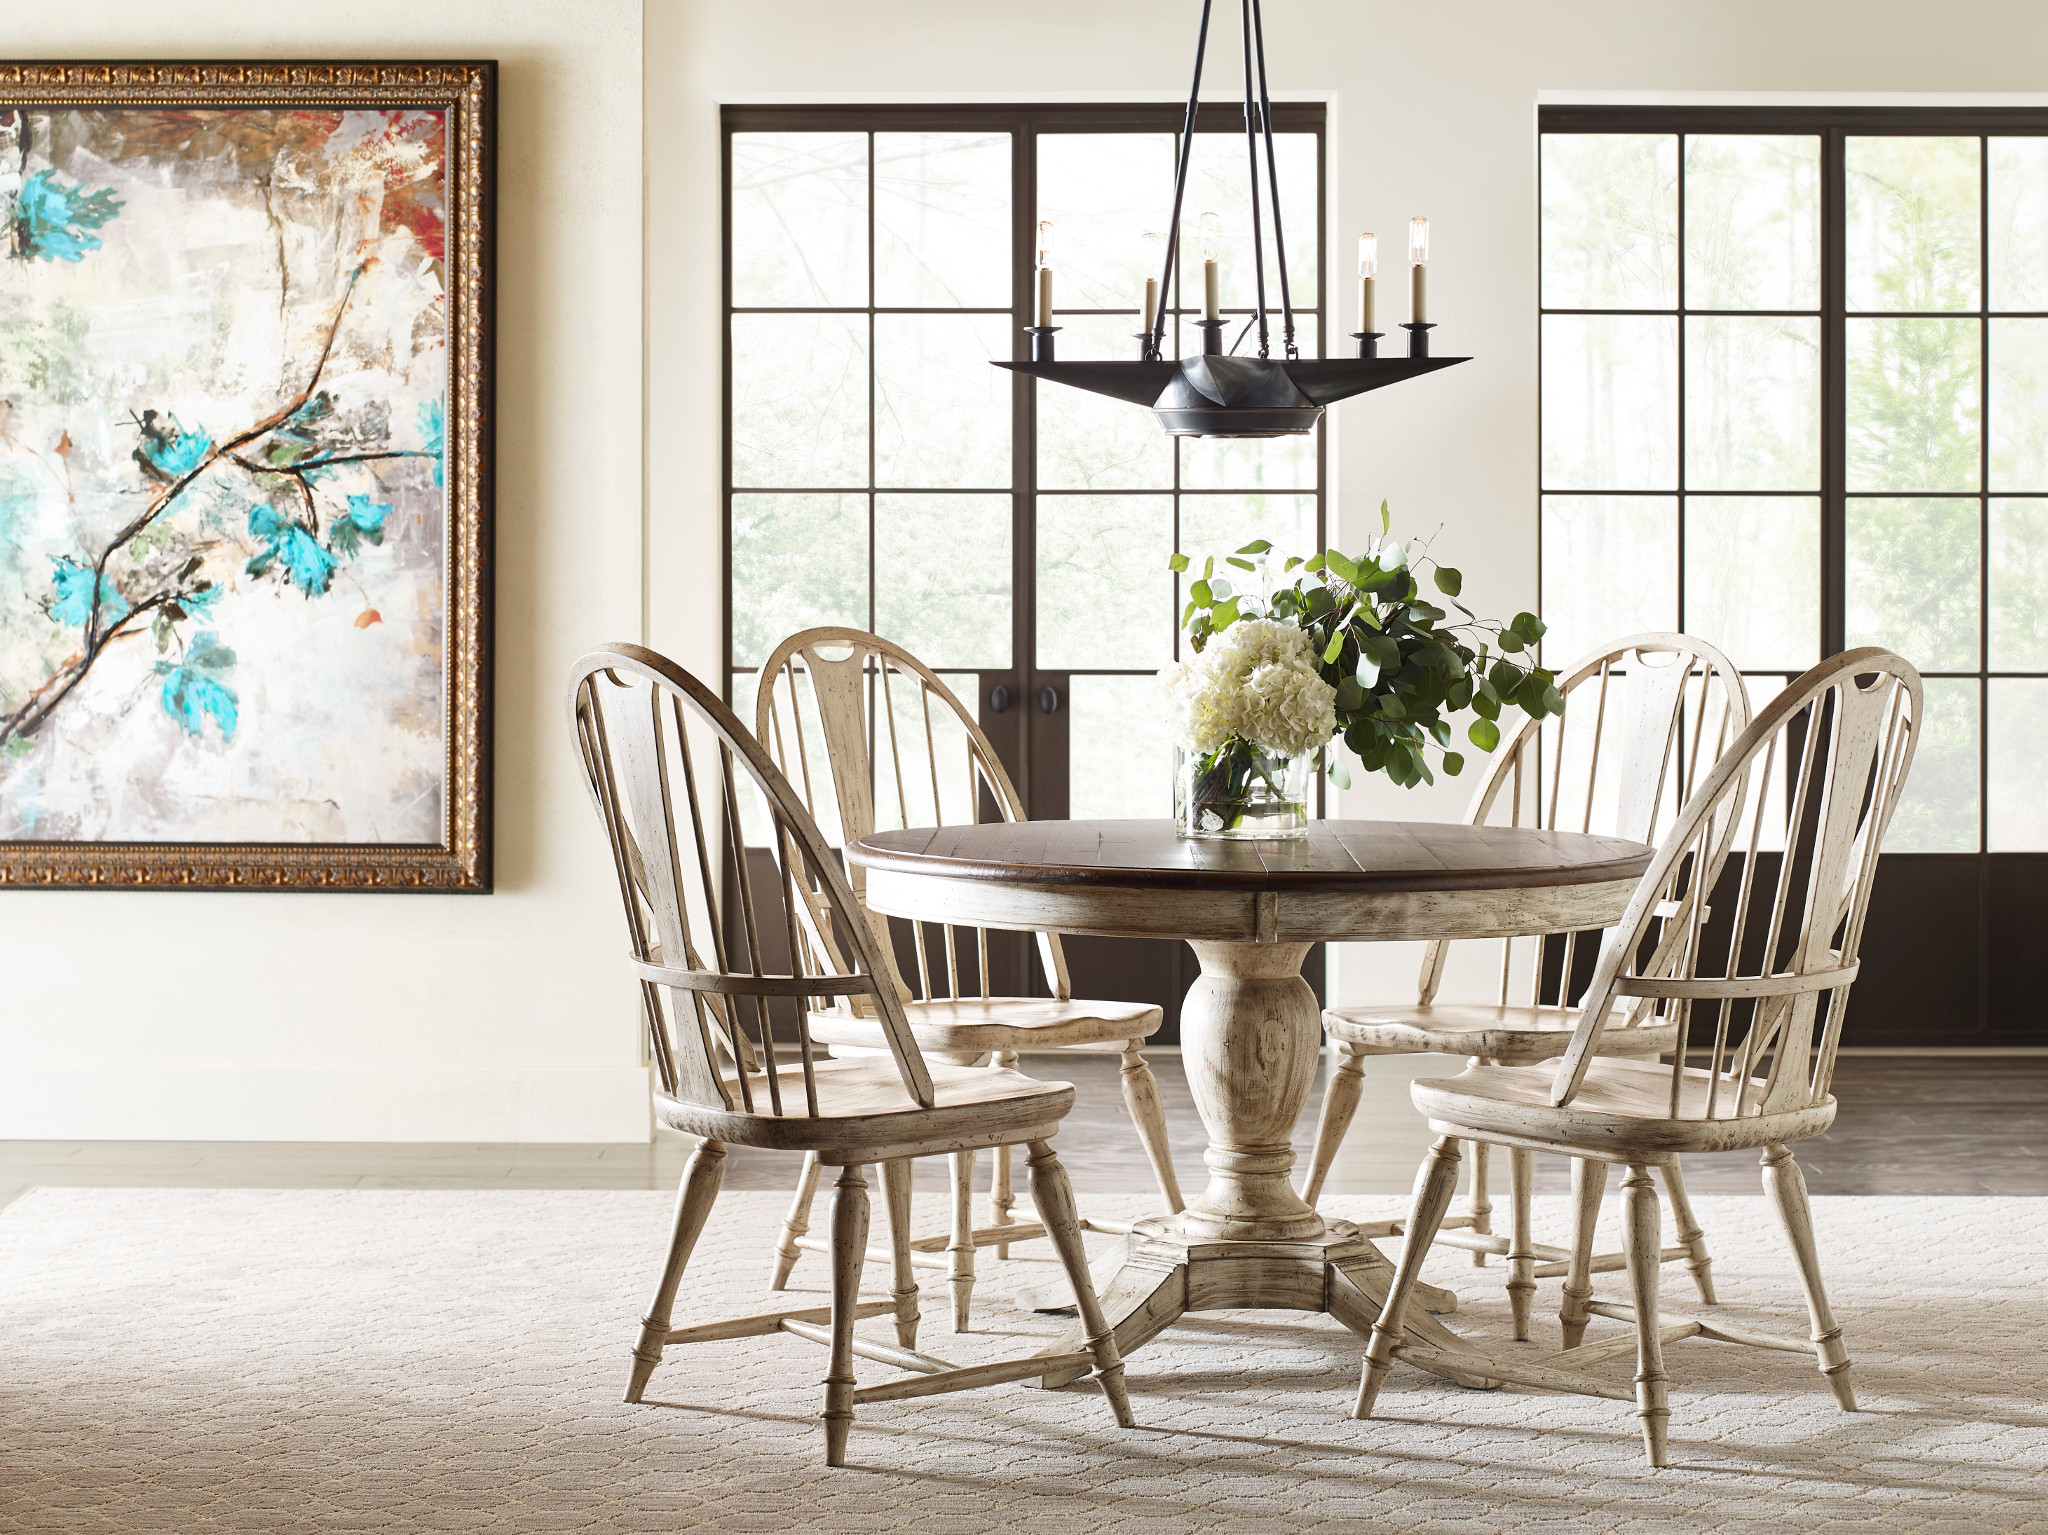 Chattanooga Kitchen Table Ideas Kincaid Weatherford collection at EF Brannon in Chattanooga TN